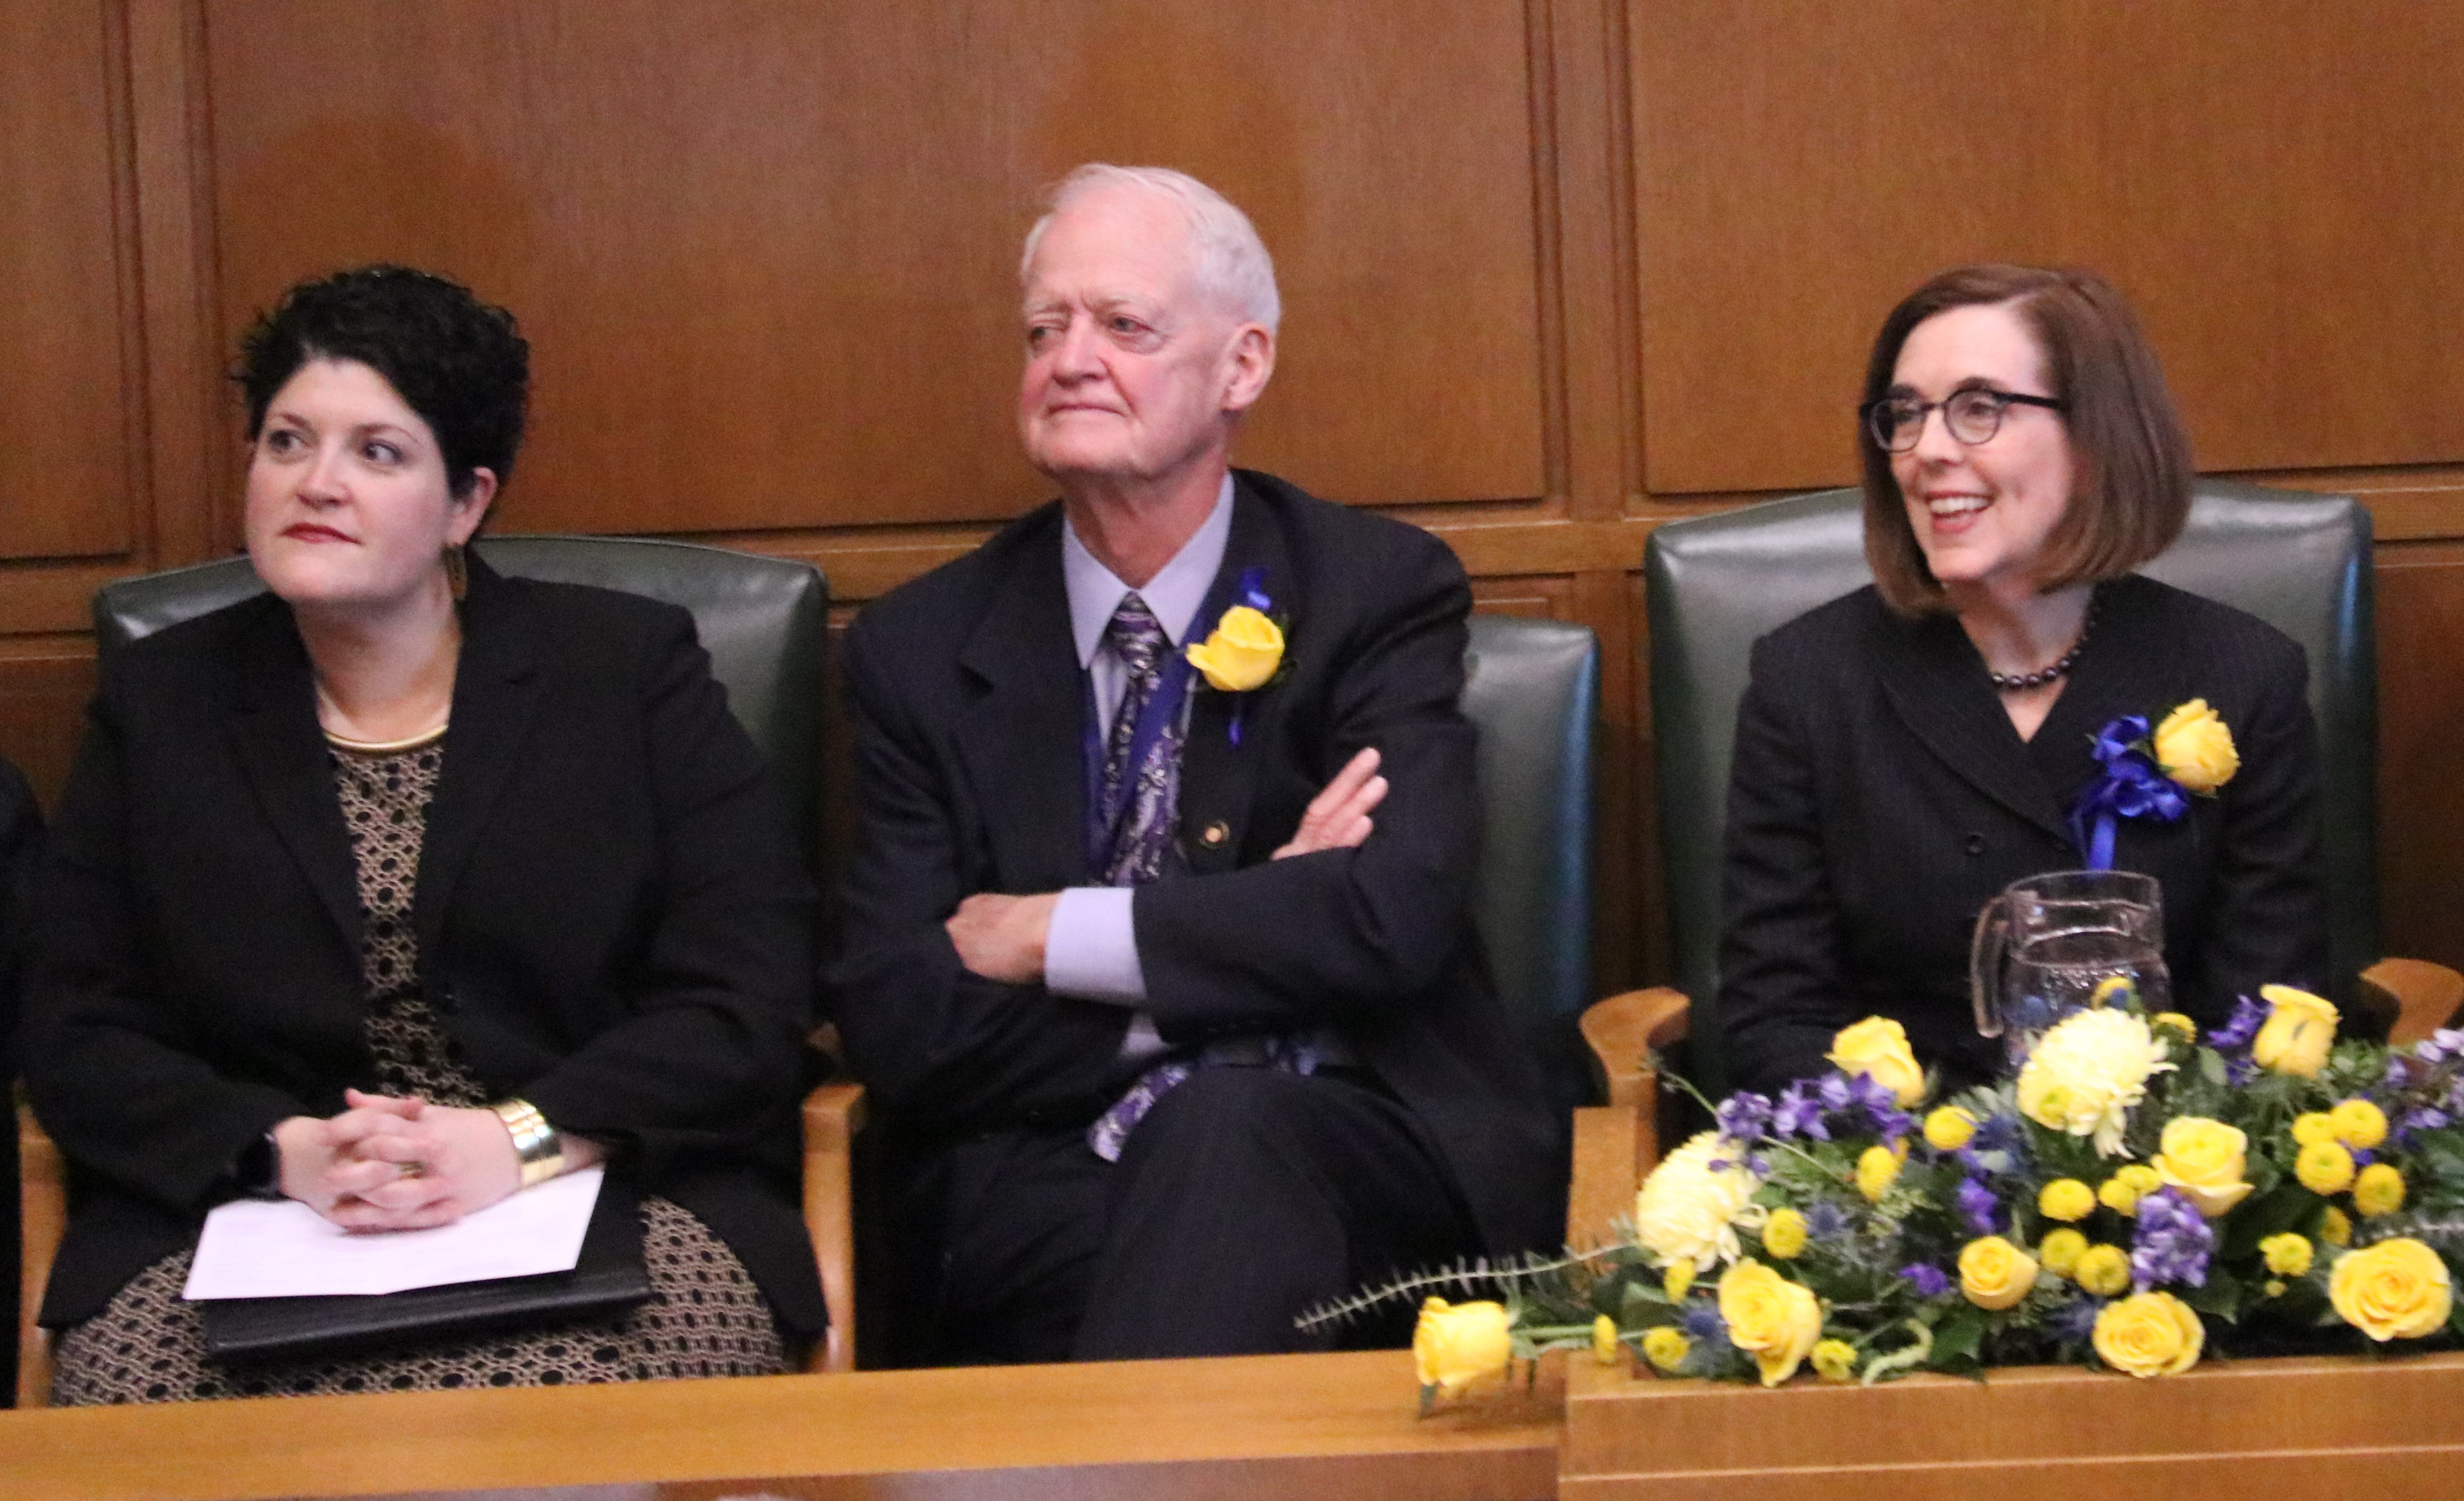 Rabbi Rachel Joseph (left) sat with Senate President Peter Courtney and Gov. Kate Brown before offering the invocation for Brown's oath of office ceremony Monday in the Oregon House chamber. (Photo by Jake Arnold, OSBA)